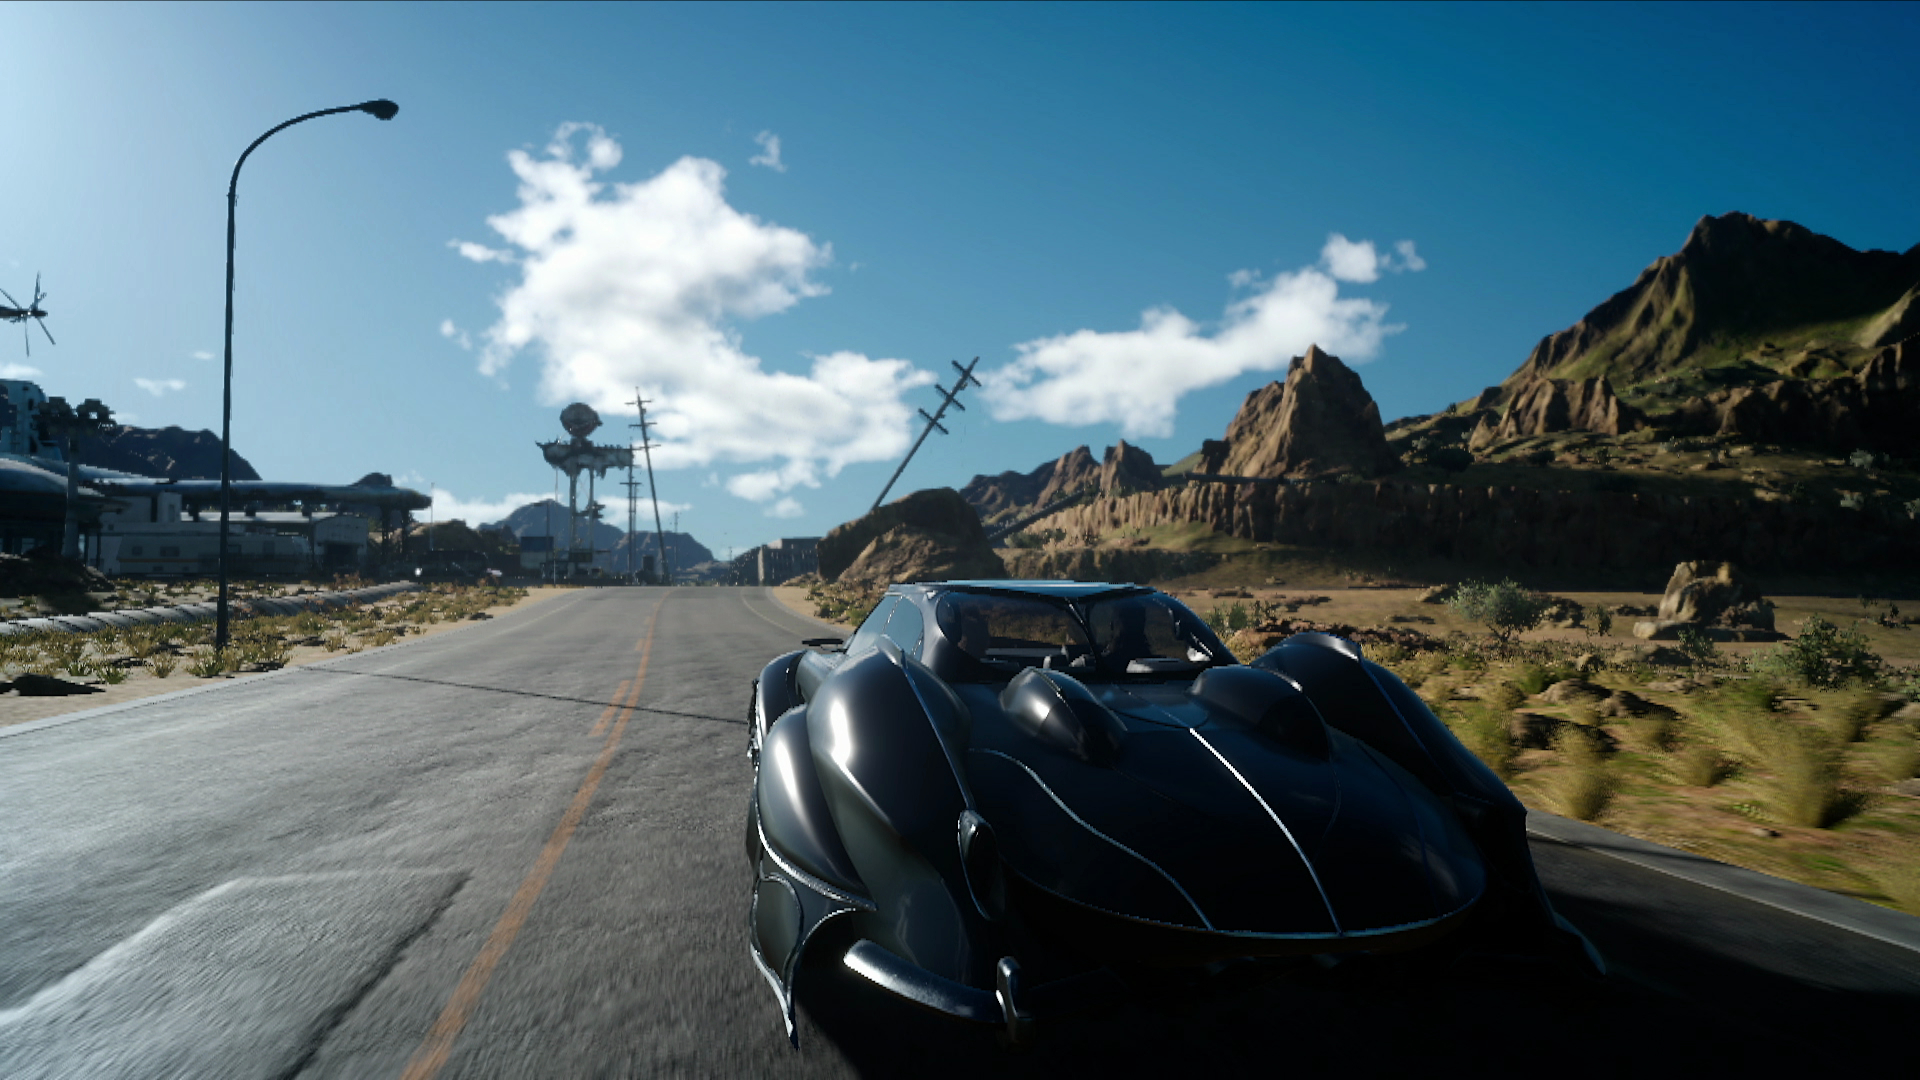 d Final Fantasy 15s Stunning New Trailer Highlights Some Incredible Environments